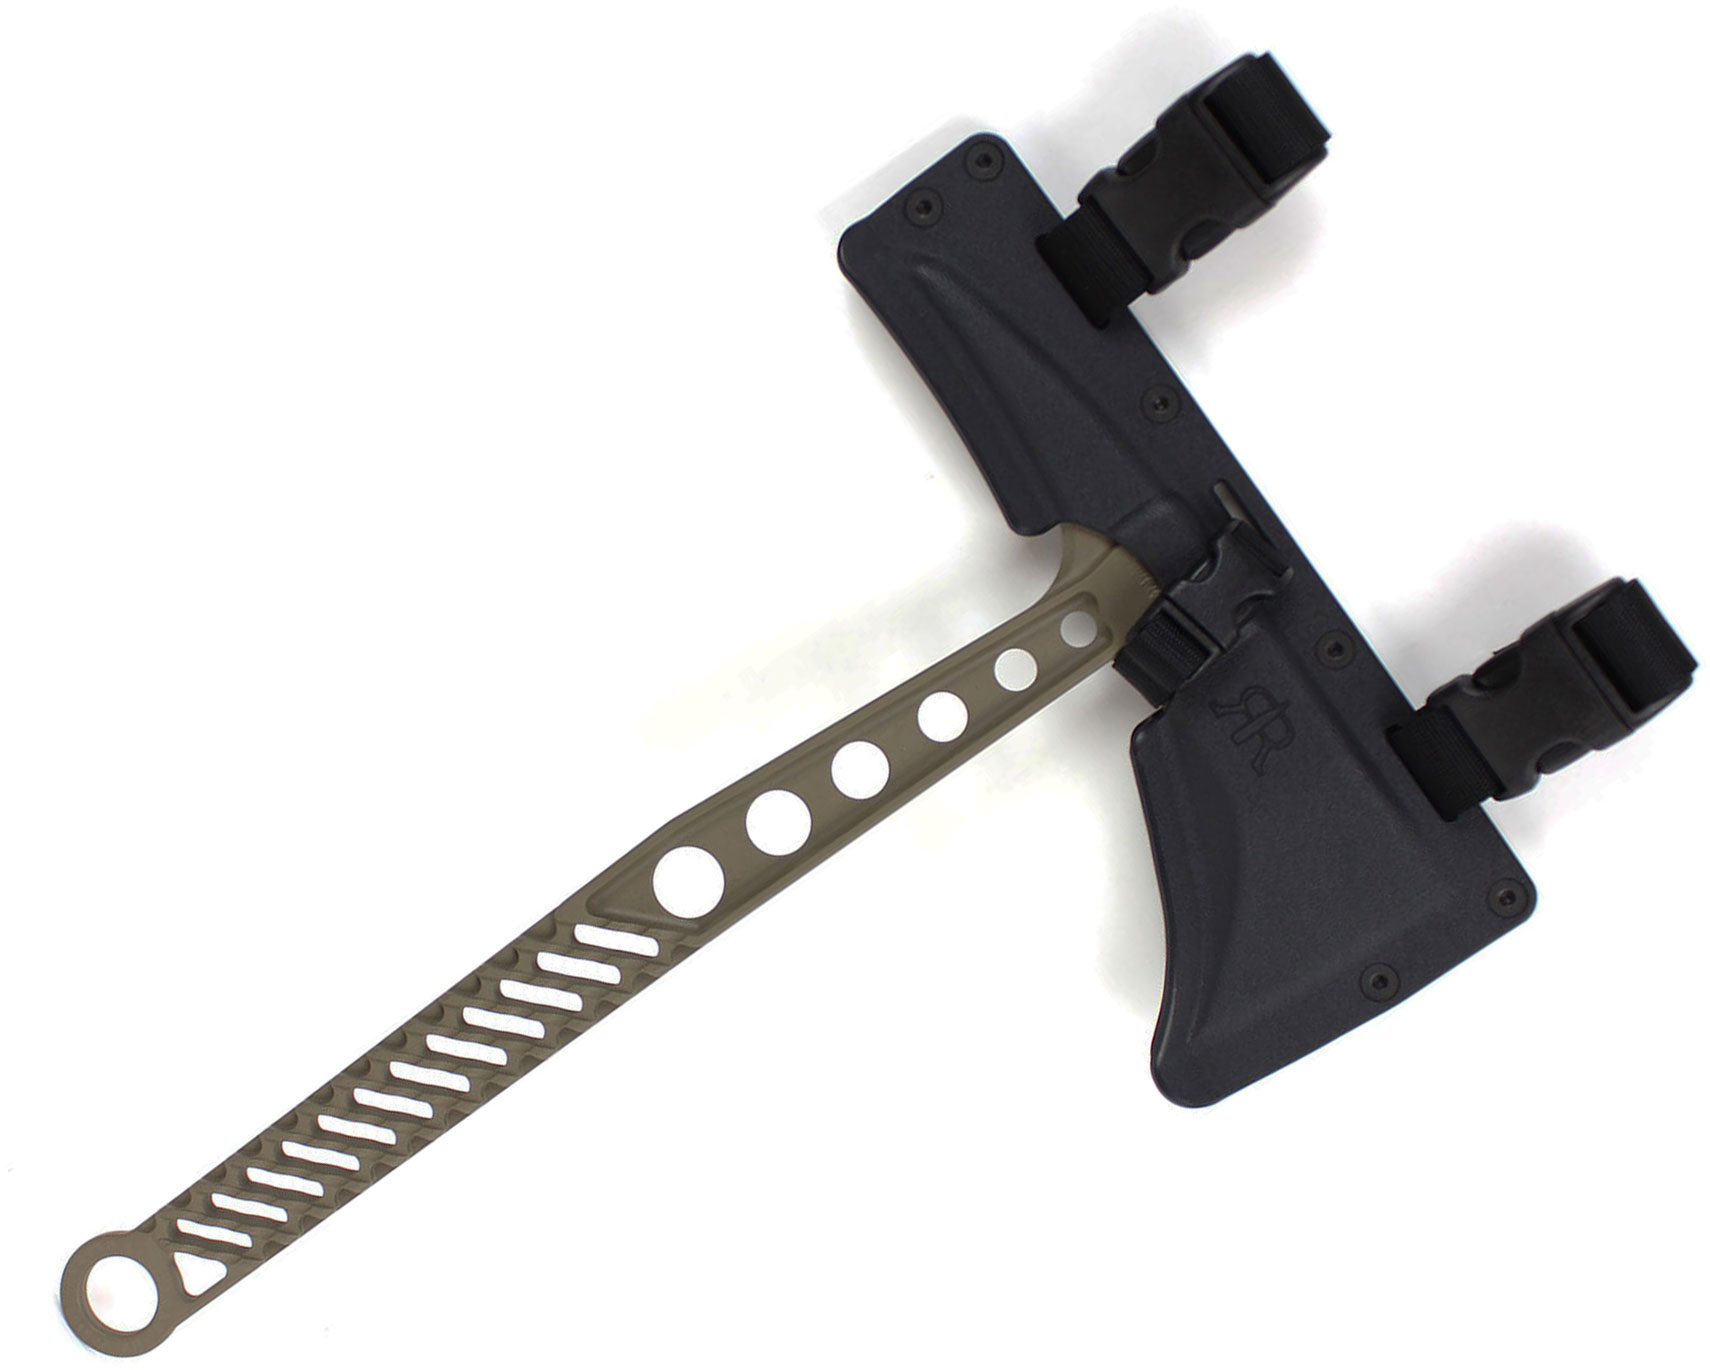 Red Rock Rifleworks MT-1 Monolithic Tactical Tomahawk, FDE Cerakote, 14.75 inch Overall, Kydex Sheath